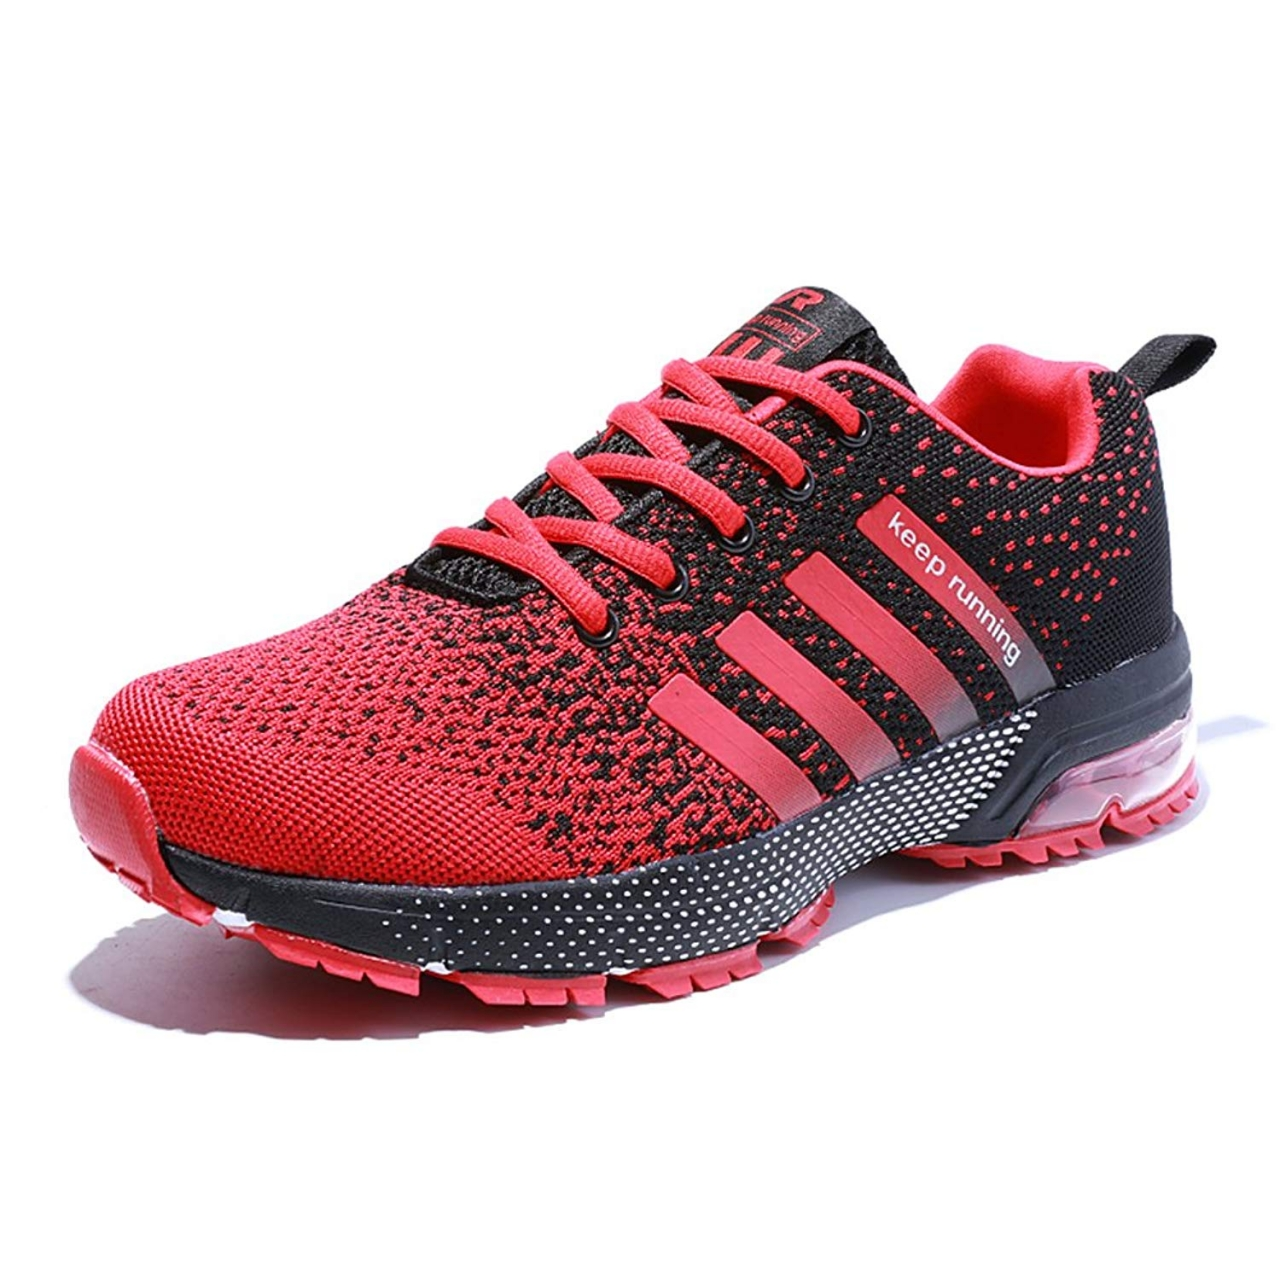 b425fb7f6 Men's Breathable Knit Athletic Shoes Solf Lightweight Running Sneskers  Outdoor Workout Gym Tennis red 41: Product No: 1814458. Item specifics:  Brand: